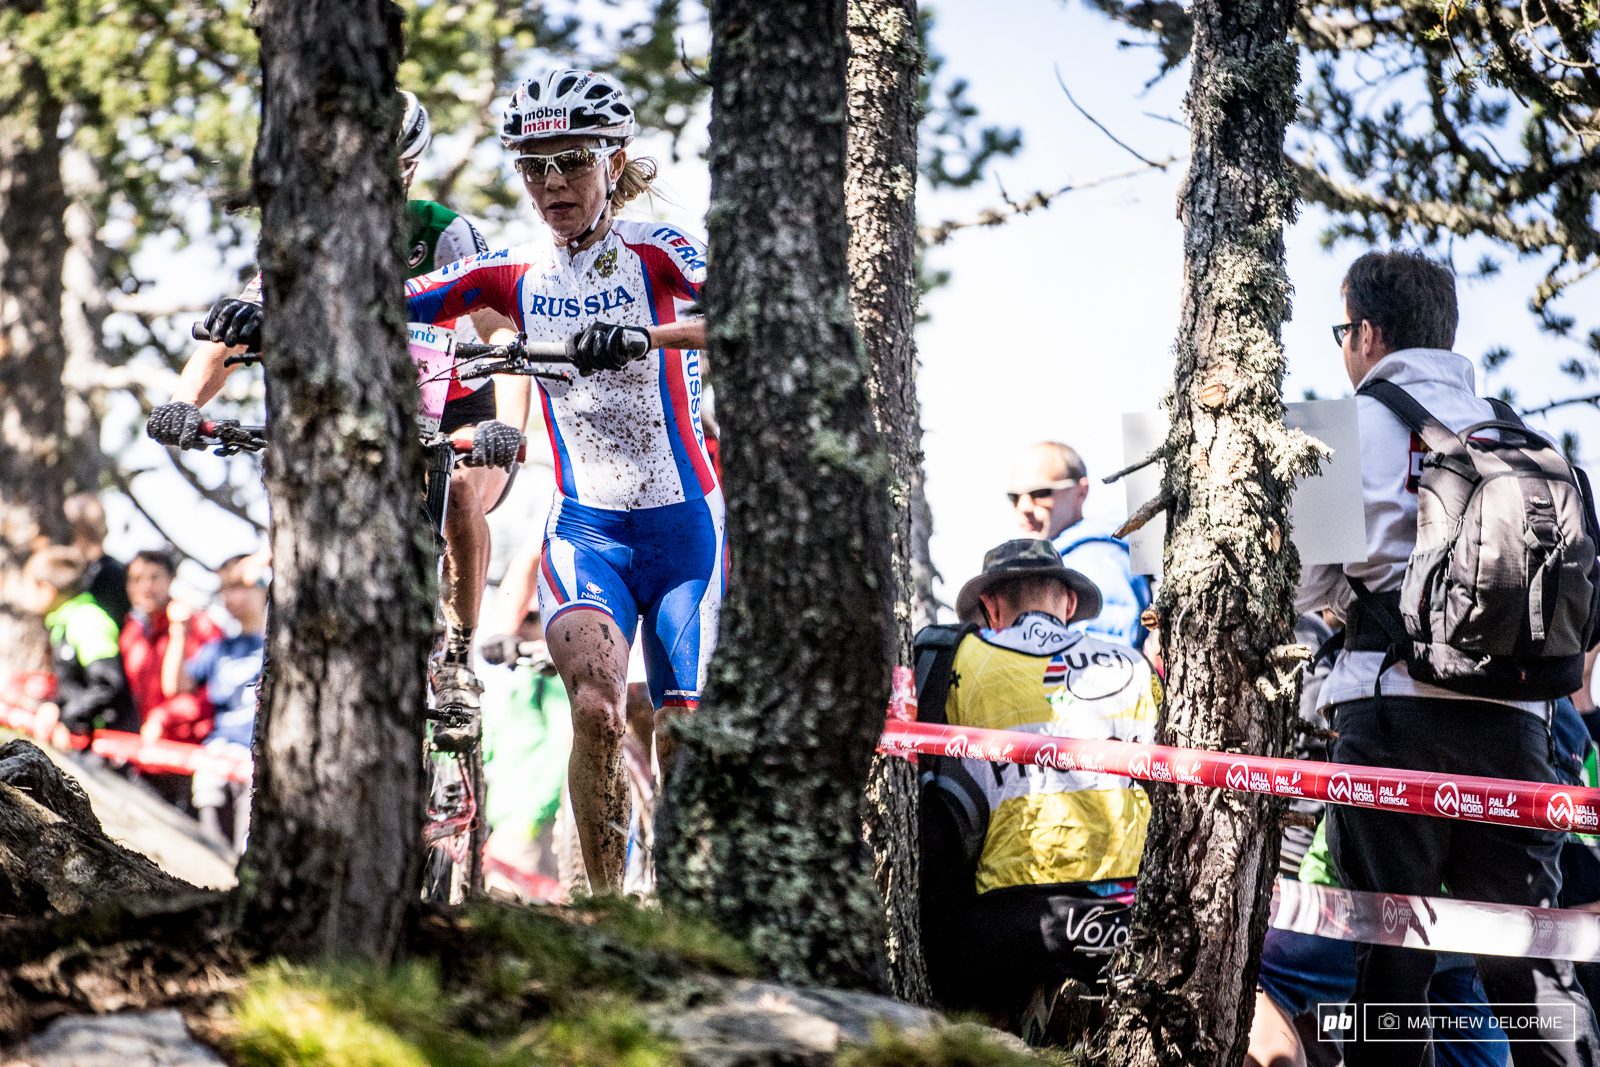 Irina got caught up on the technical uphill and had to run the descent on the first lap.